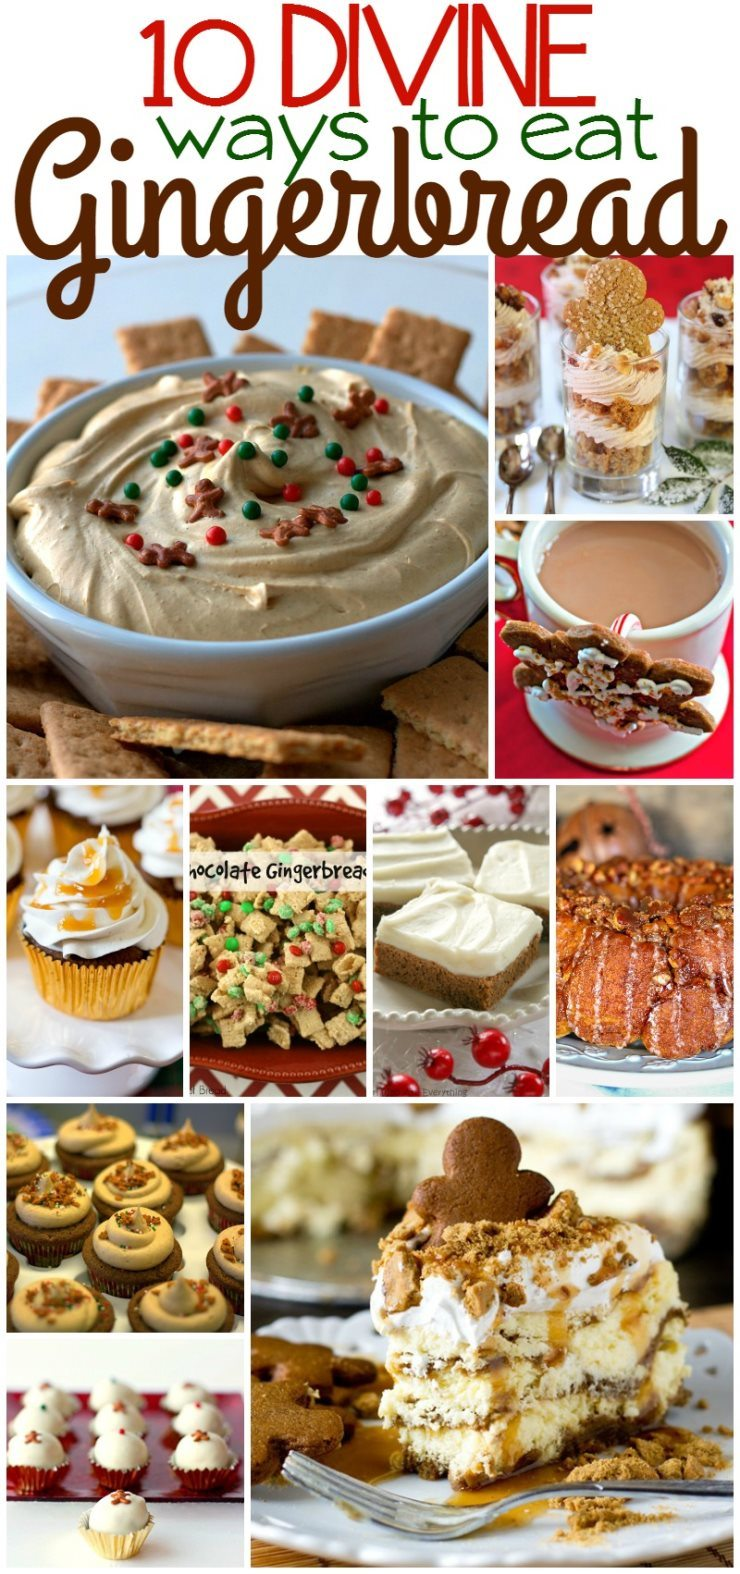 If the Fall has pumpkin pie-spiced everything then the Christmas season has GINGERBREAD! Today I'm sharing my favorite holiday treat in this roundup of 10 Divine Ways to Eat Gingerbread!